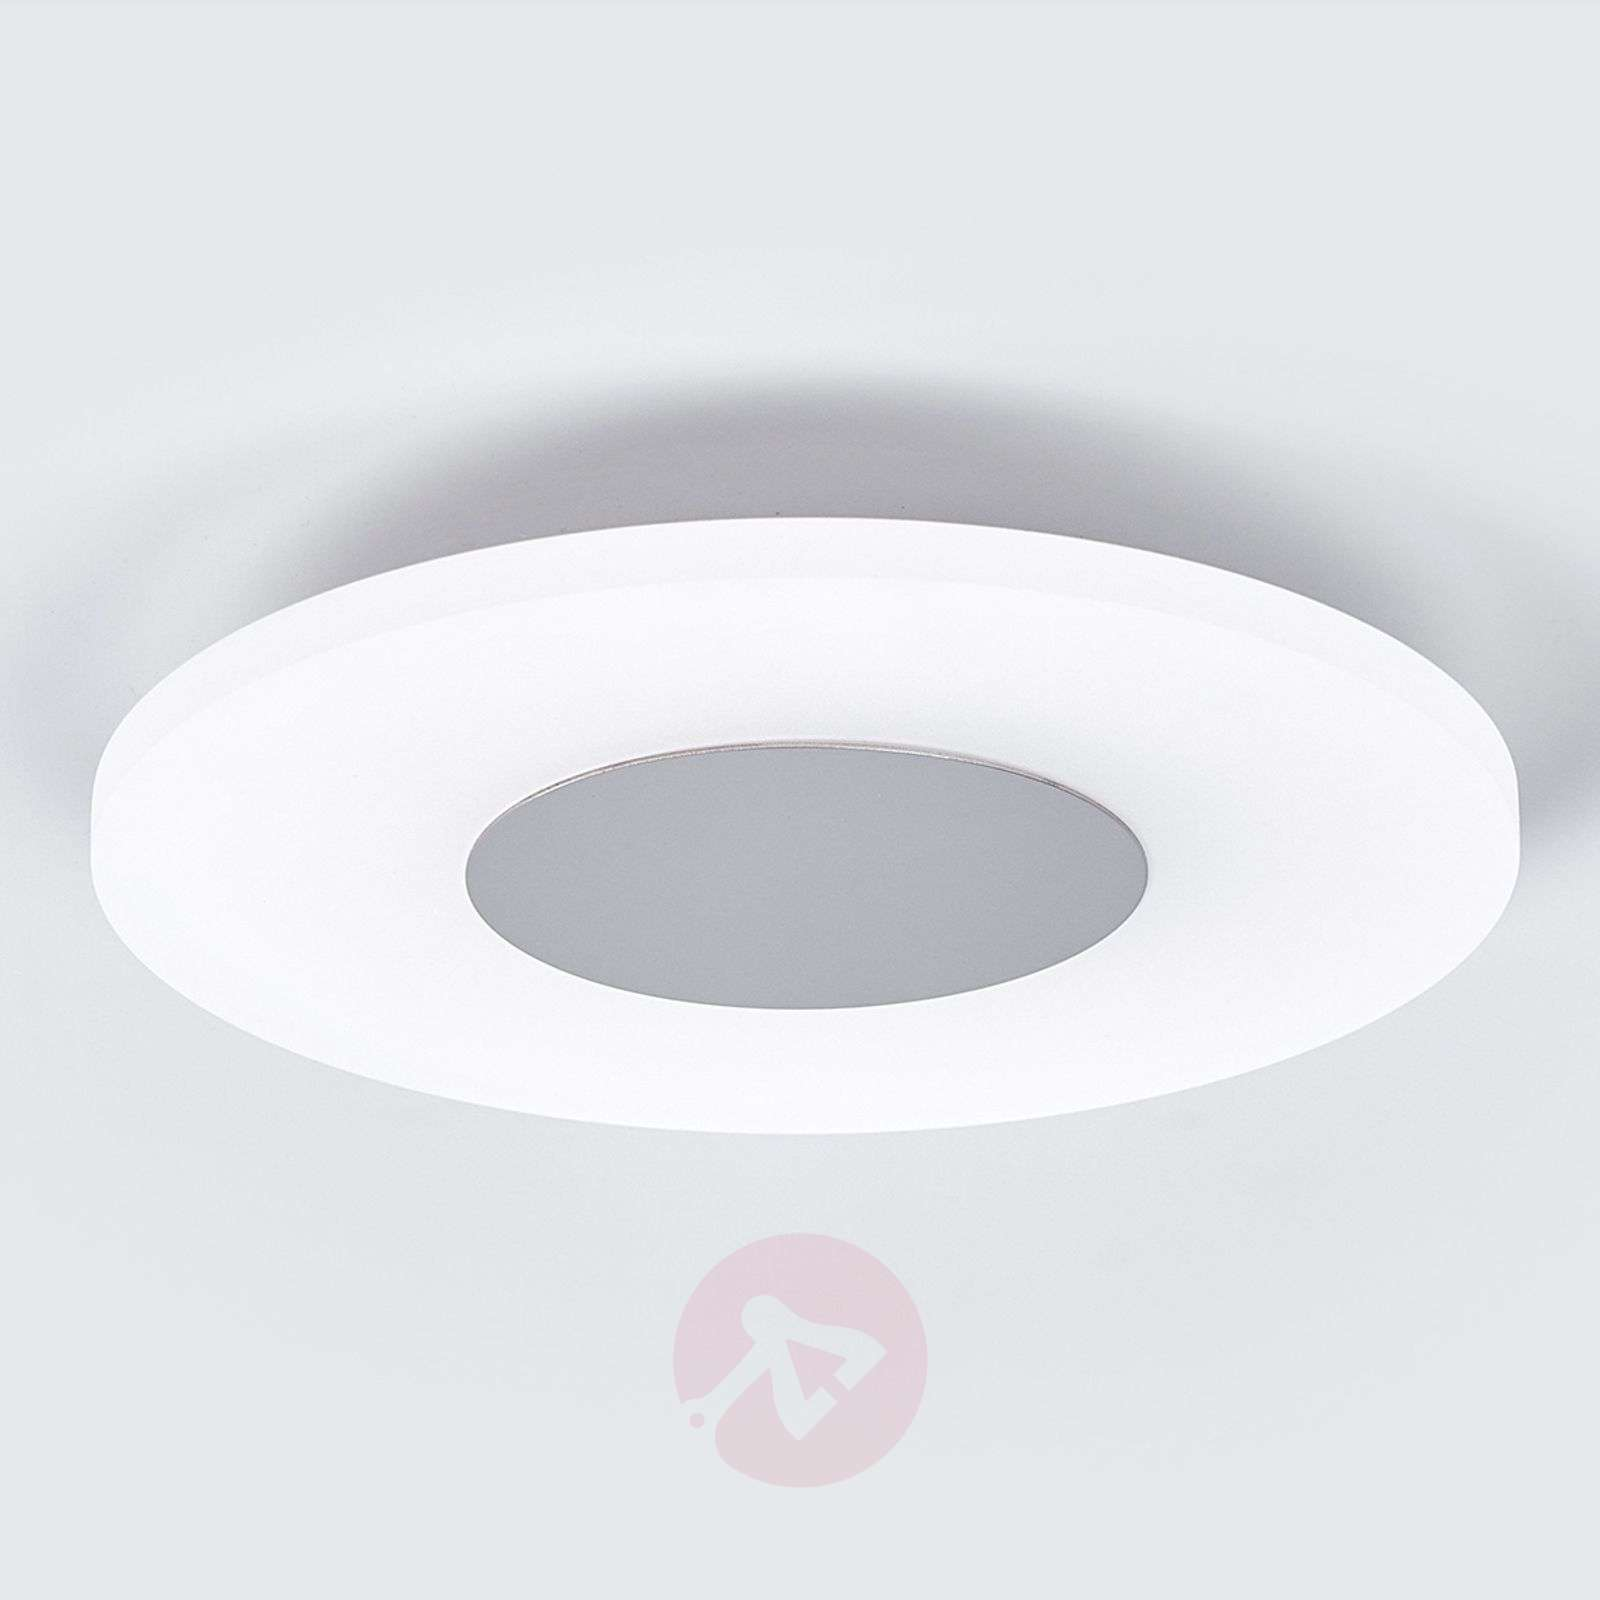 Lampada da soffitto a LED Tarja decorativa-9641049-02